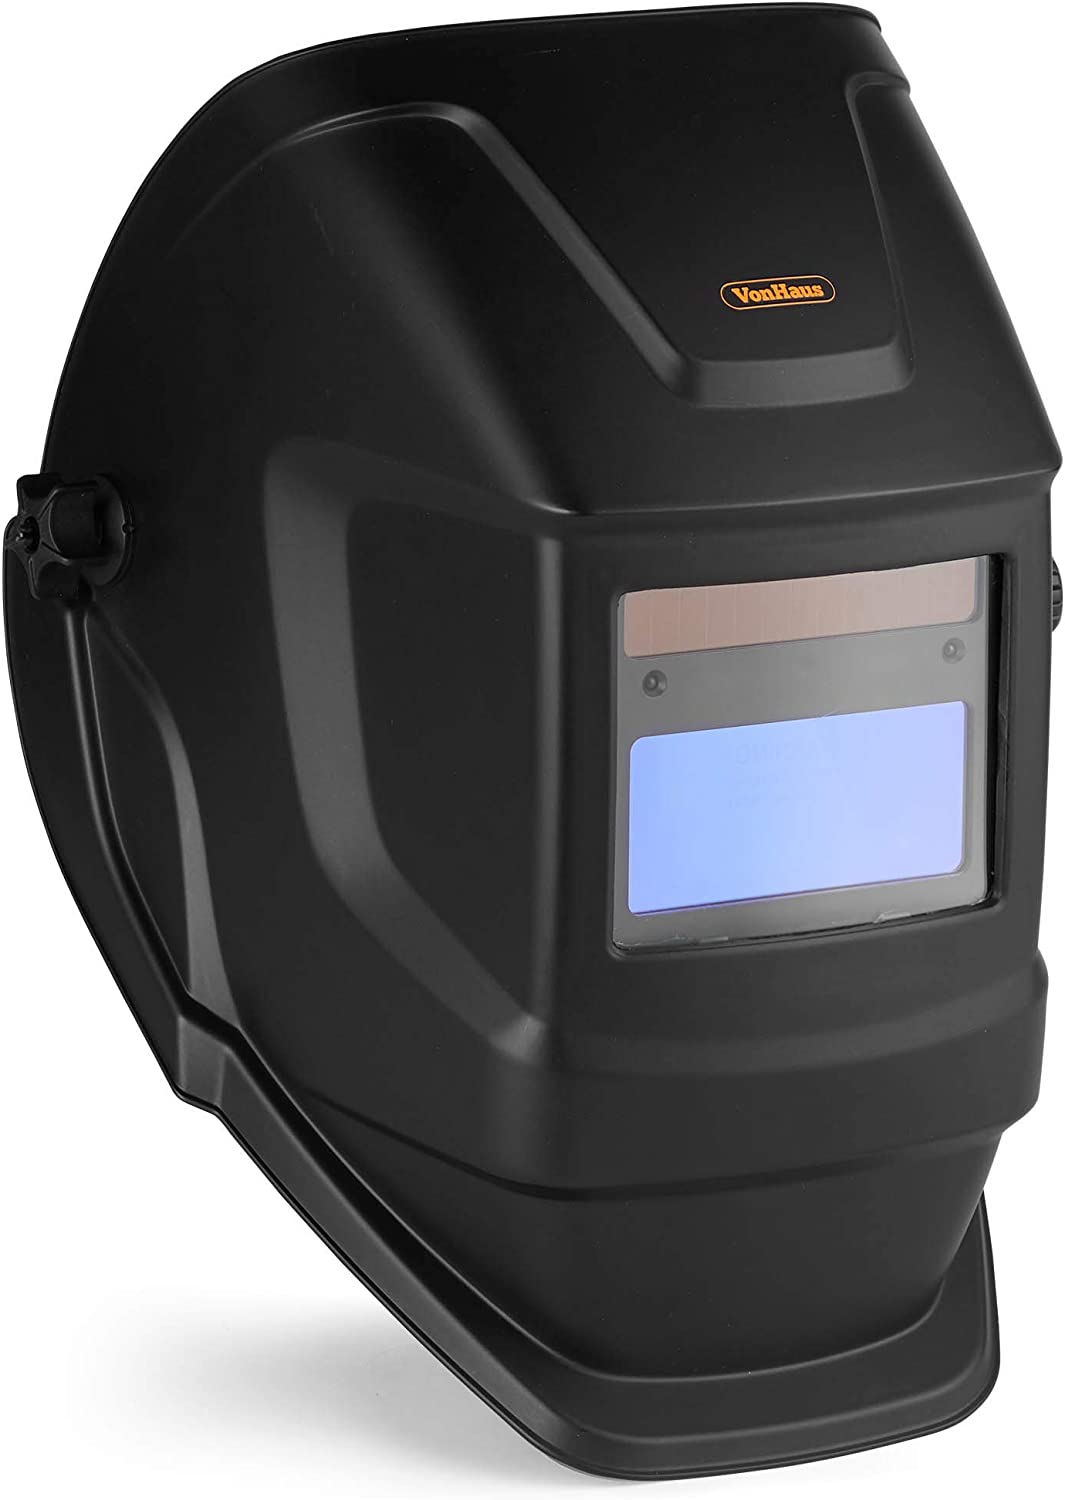 Vonhaus Welding Mask Auto Darkening Helmet With Replaceable Lens Shade Filter Sensors And Long Life Solar Assist Battery Optical Class 1 1 1 2 Amazon Co Uk Diy Tools